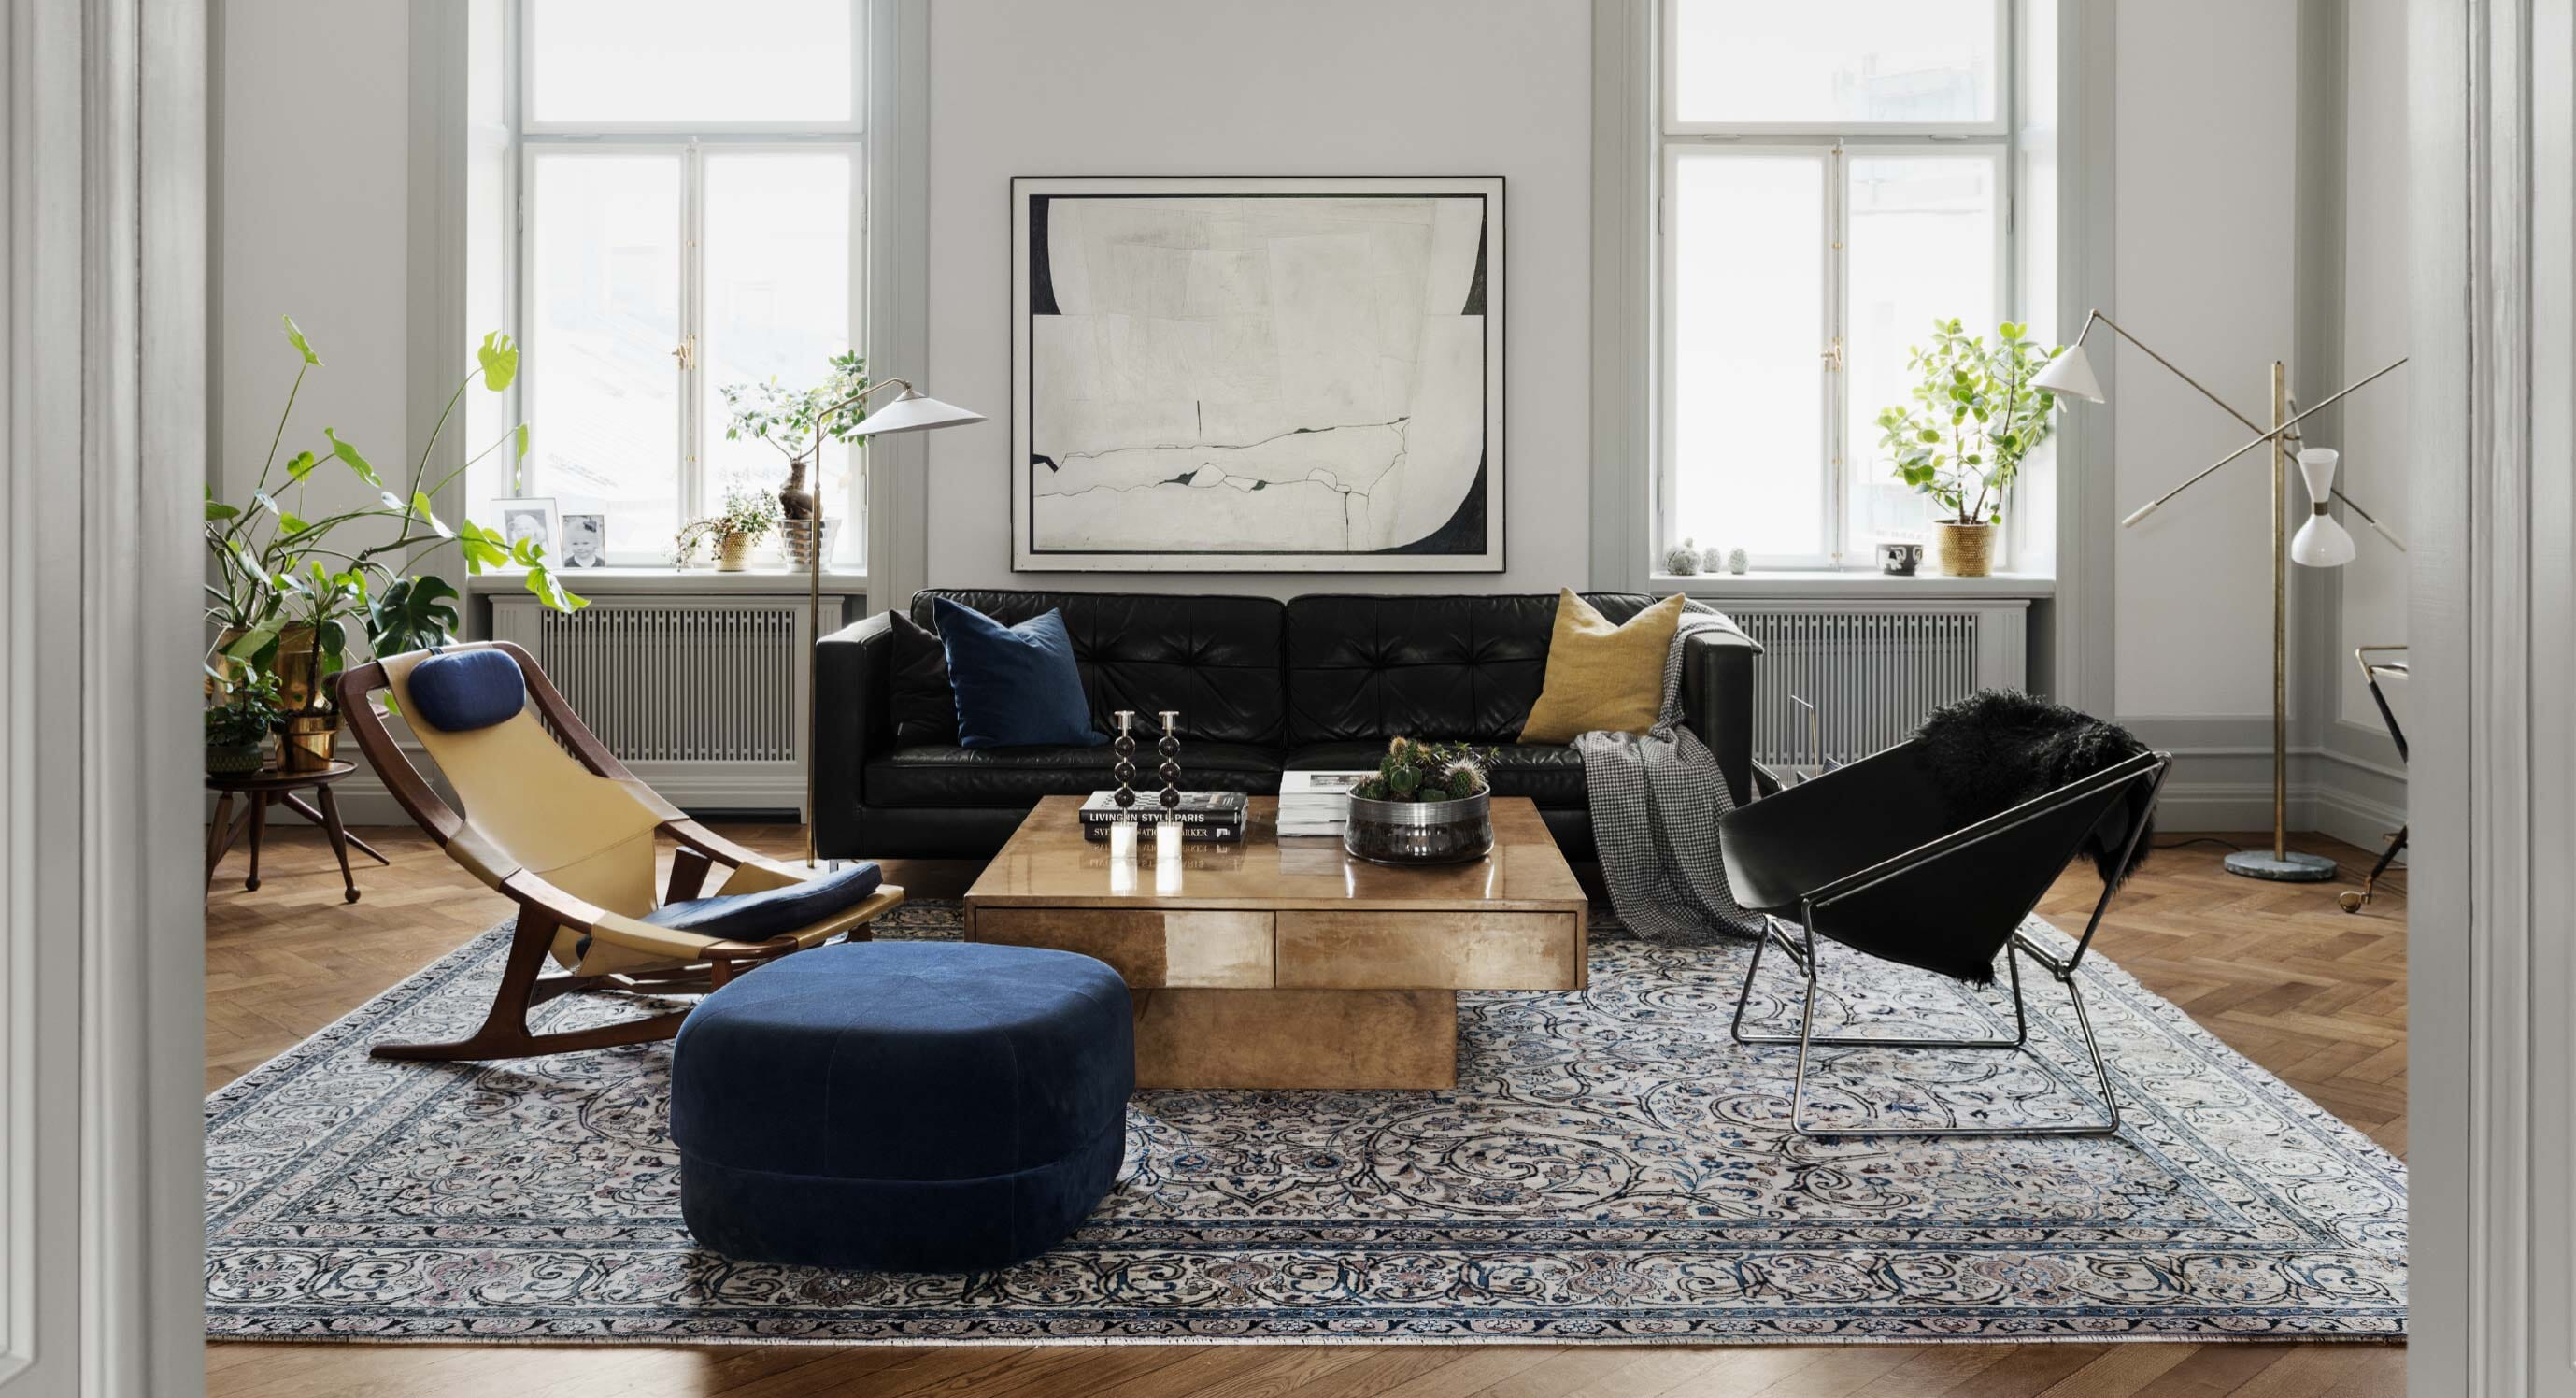 Don't Follow Trends: An Interview With Interior Designer Joanna Lavén